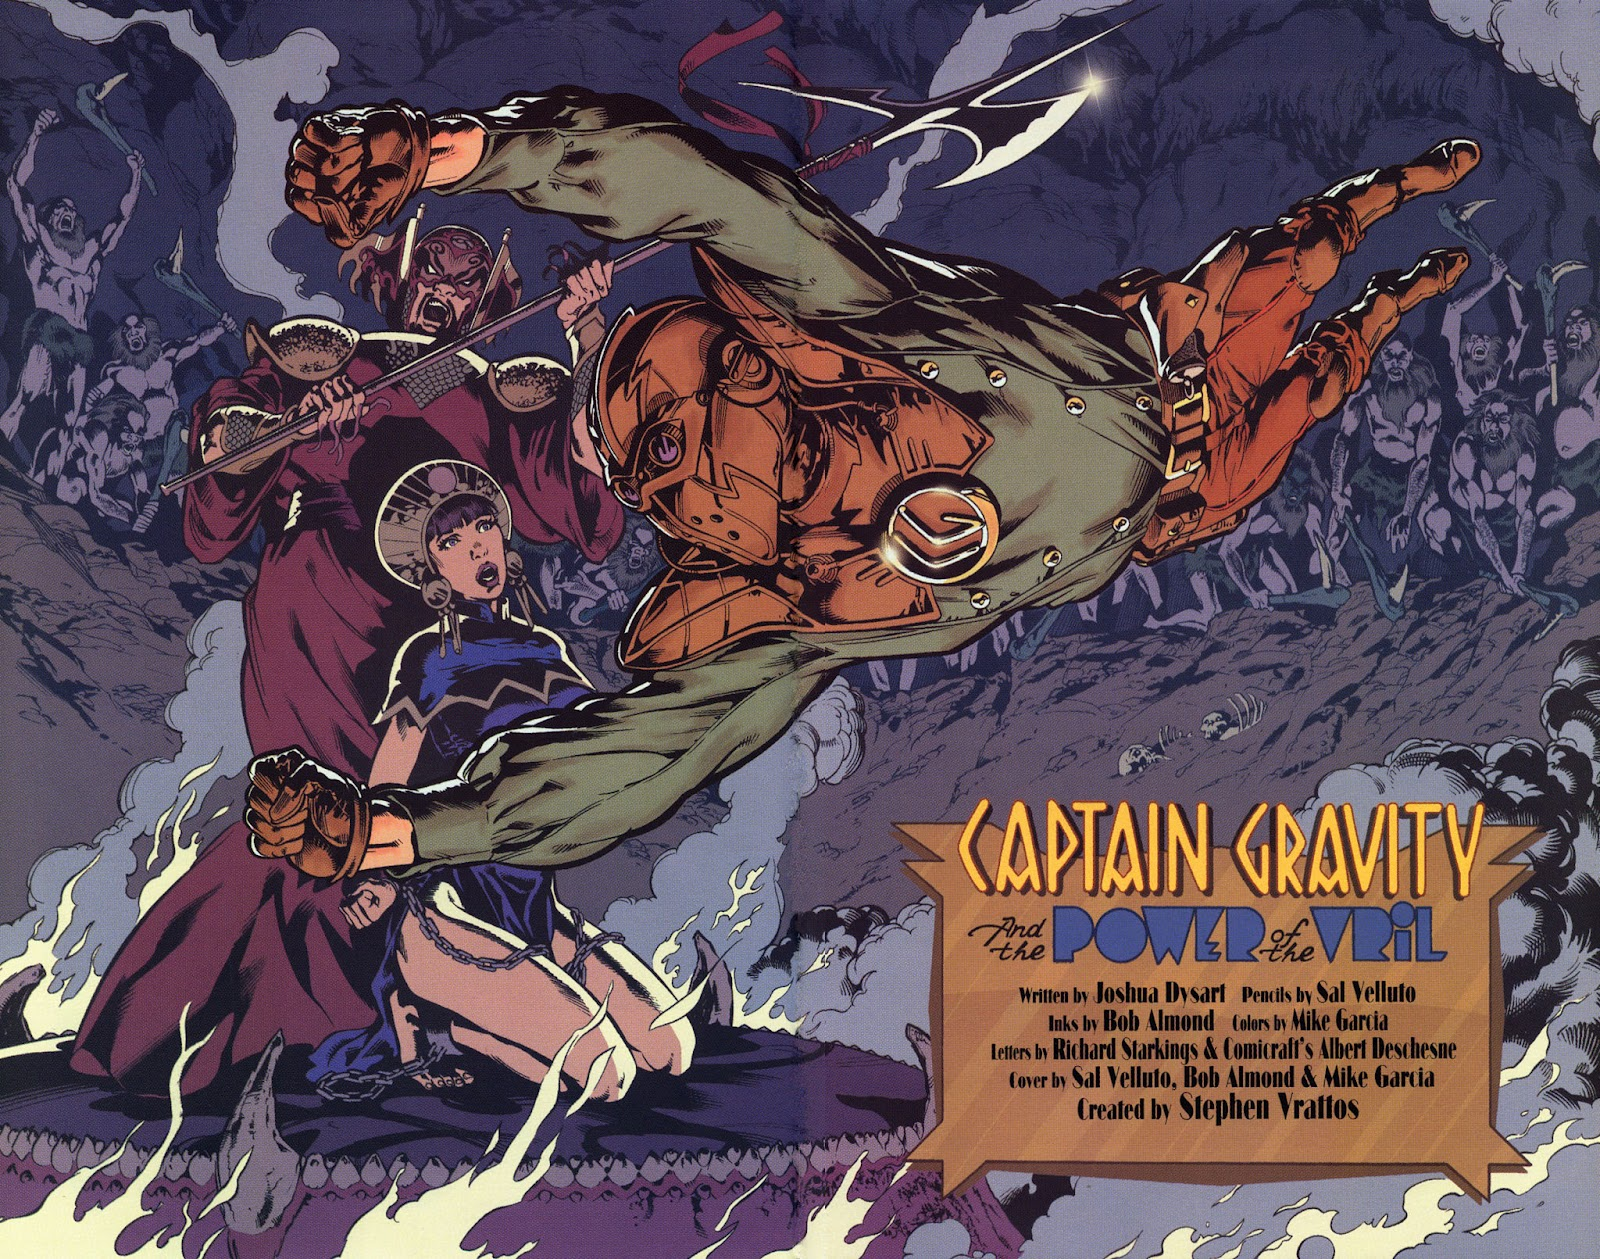 Captain Gravity and the Power of Vril _01 (2004) (04-05)